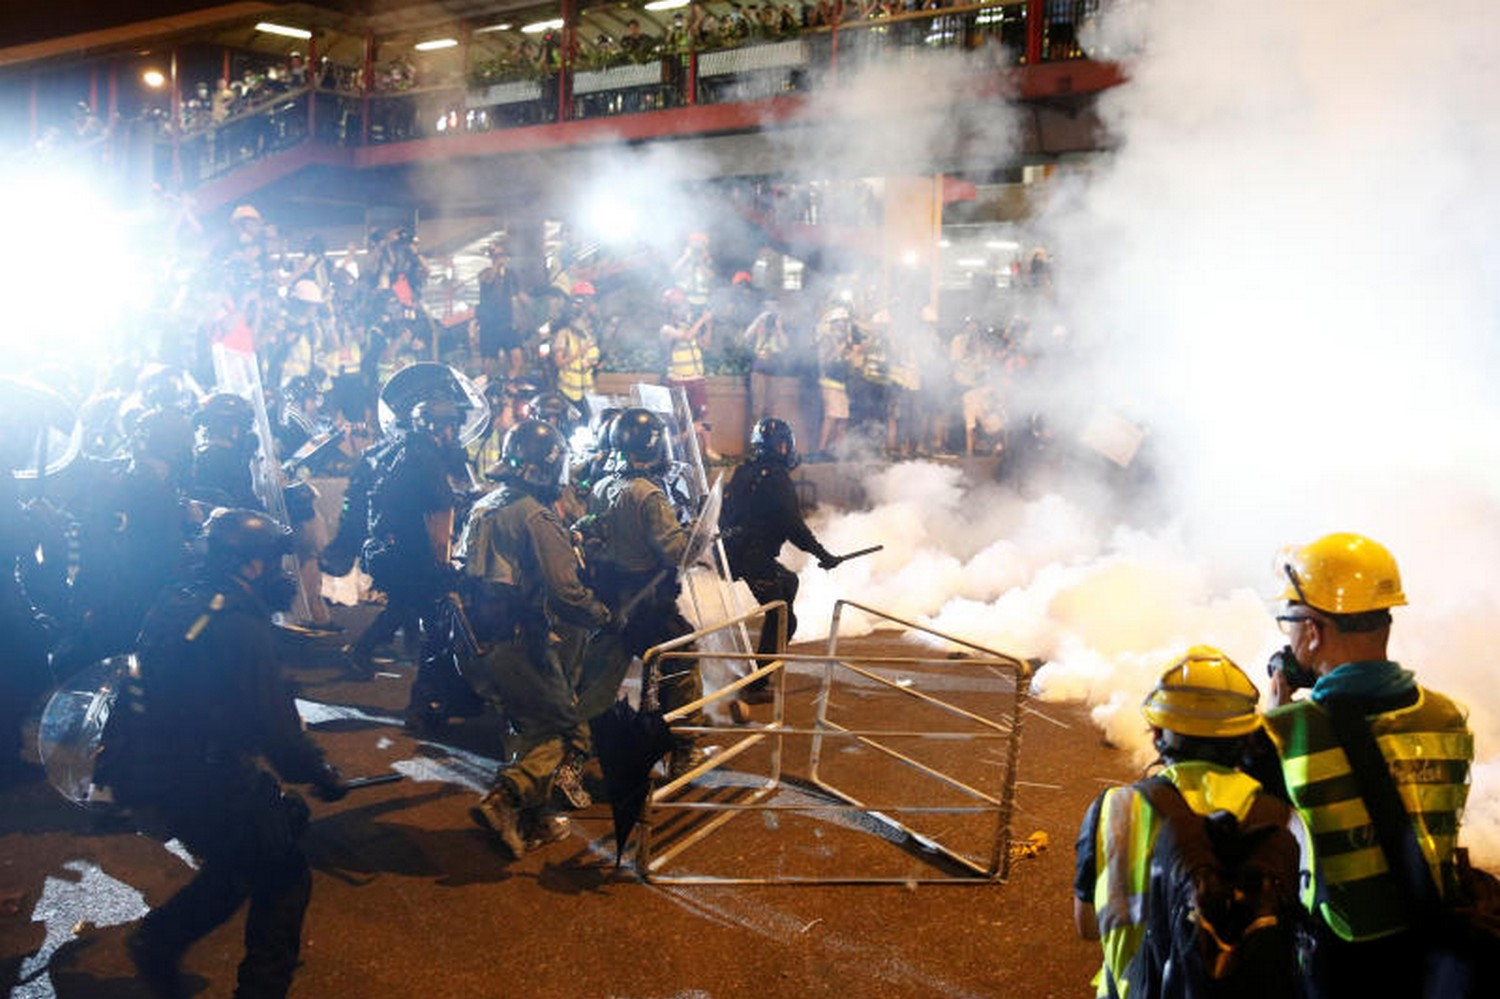 Riot police clash with anti-extradition demonstrators on Sunday night after a march to call for democratic reforms in Hong Kong. (Photo: Reuters)